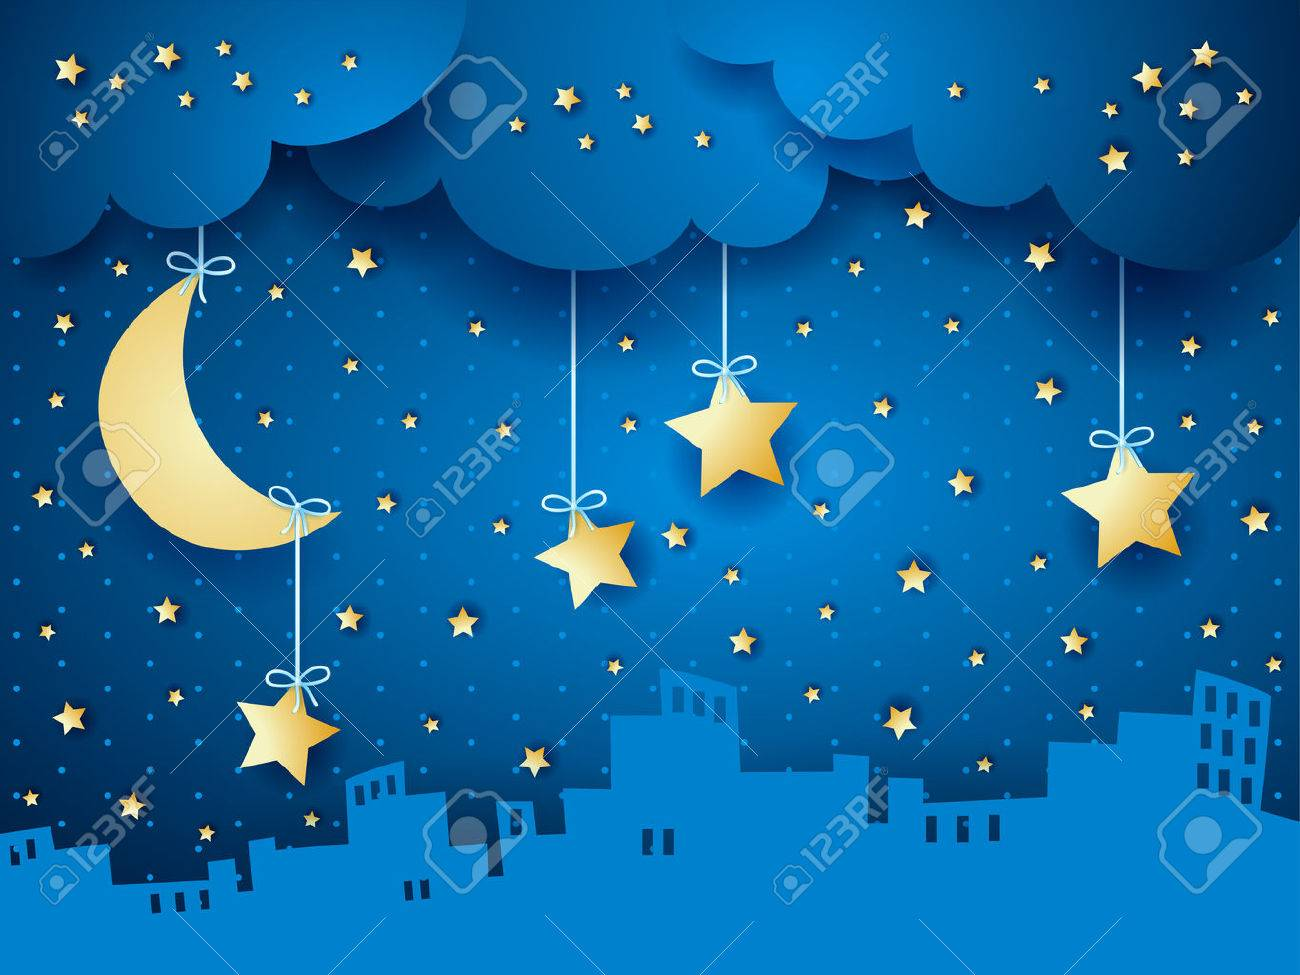 Surreal background with moon and skyline. - 53234077